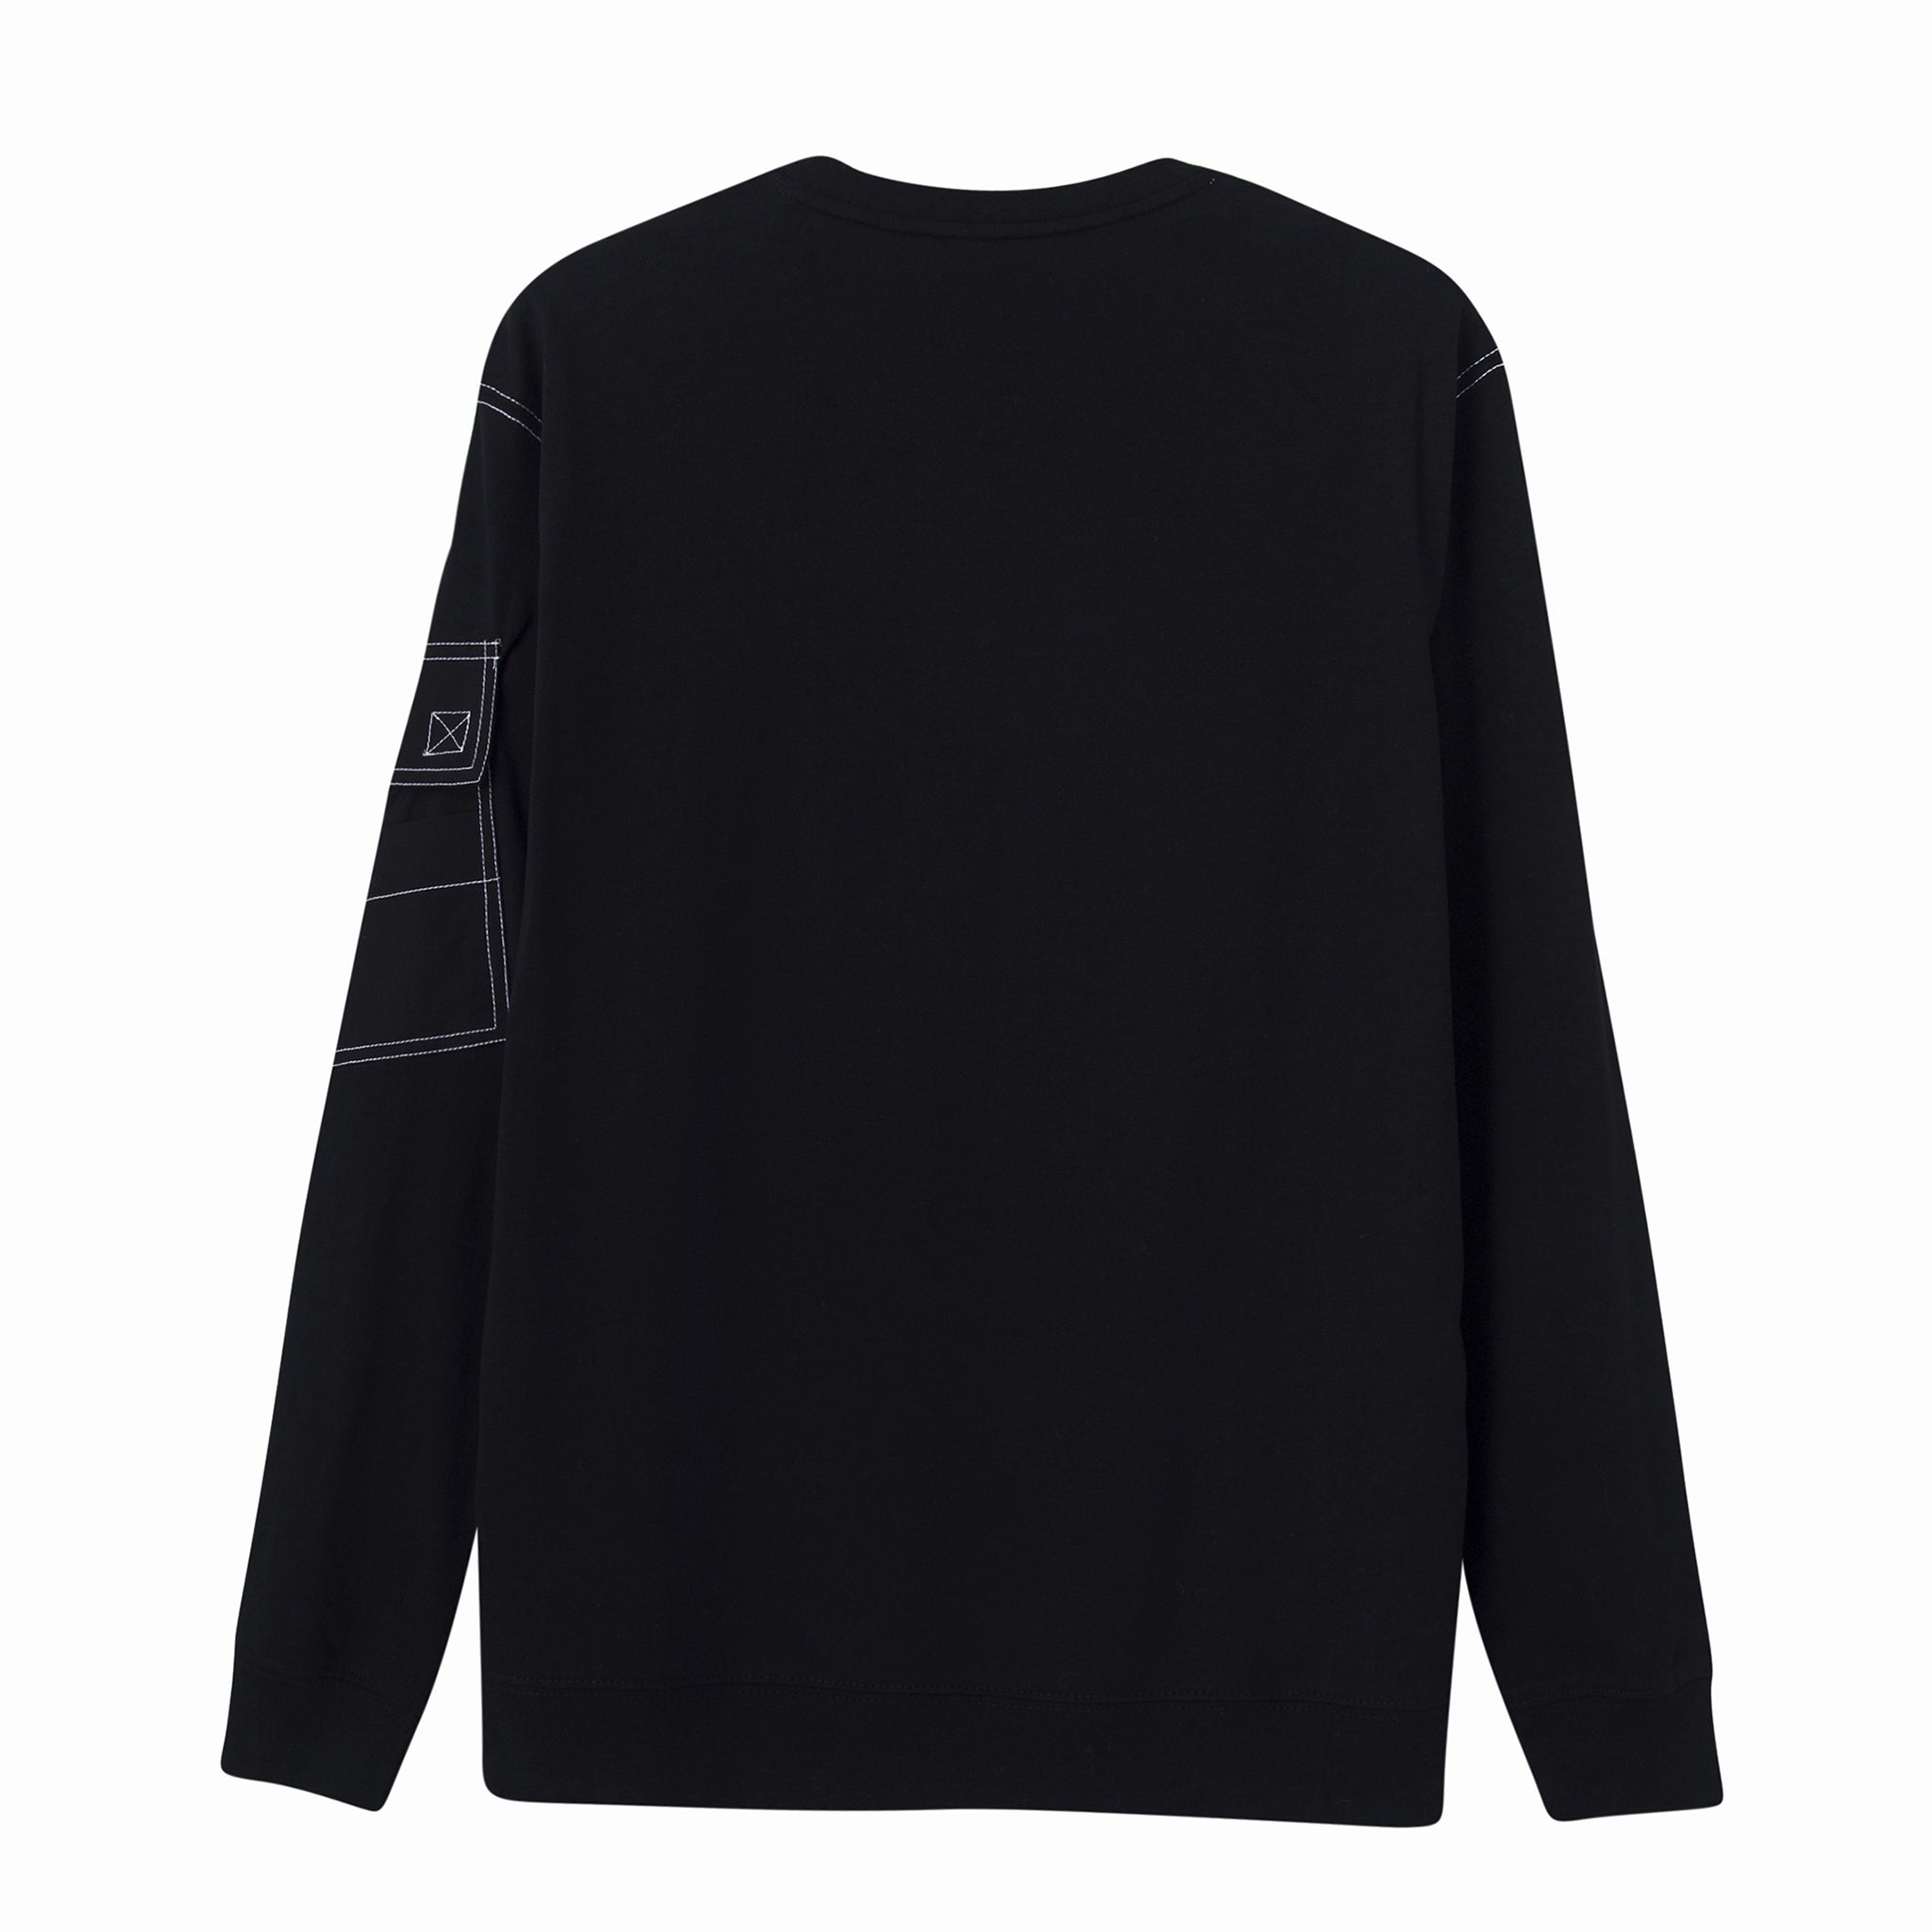 Load image into Gallery viewer, Le Fruit Defendu Pocket Sweatshirt - Black